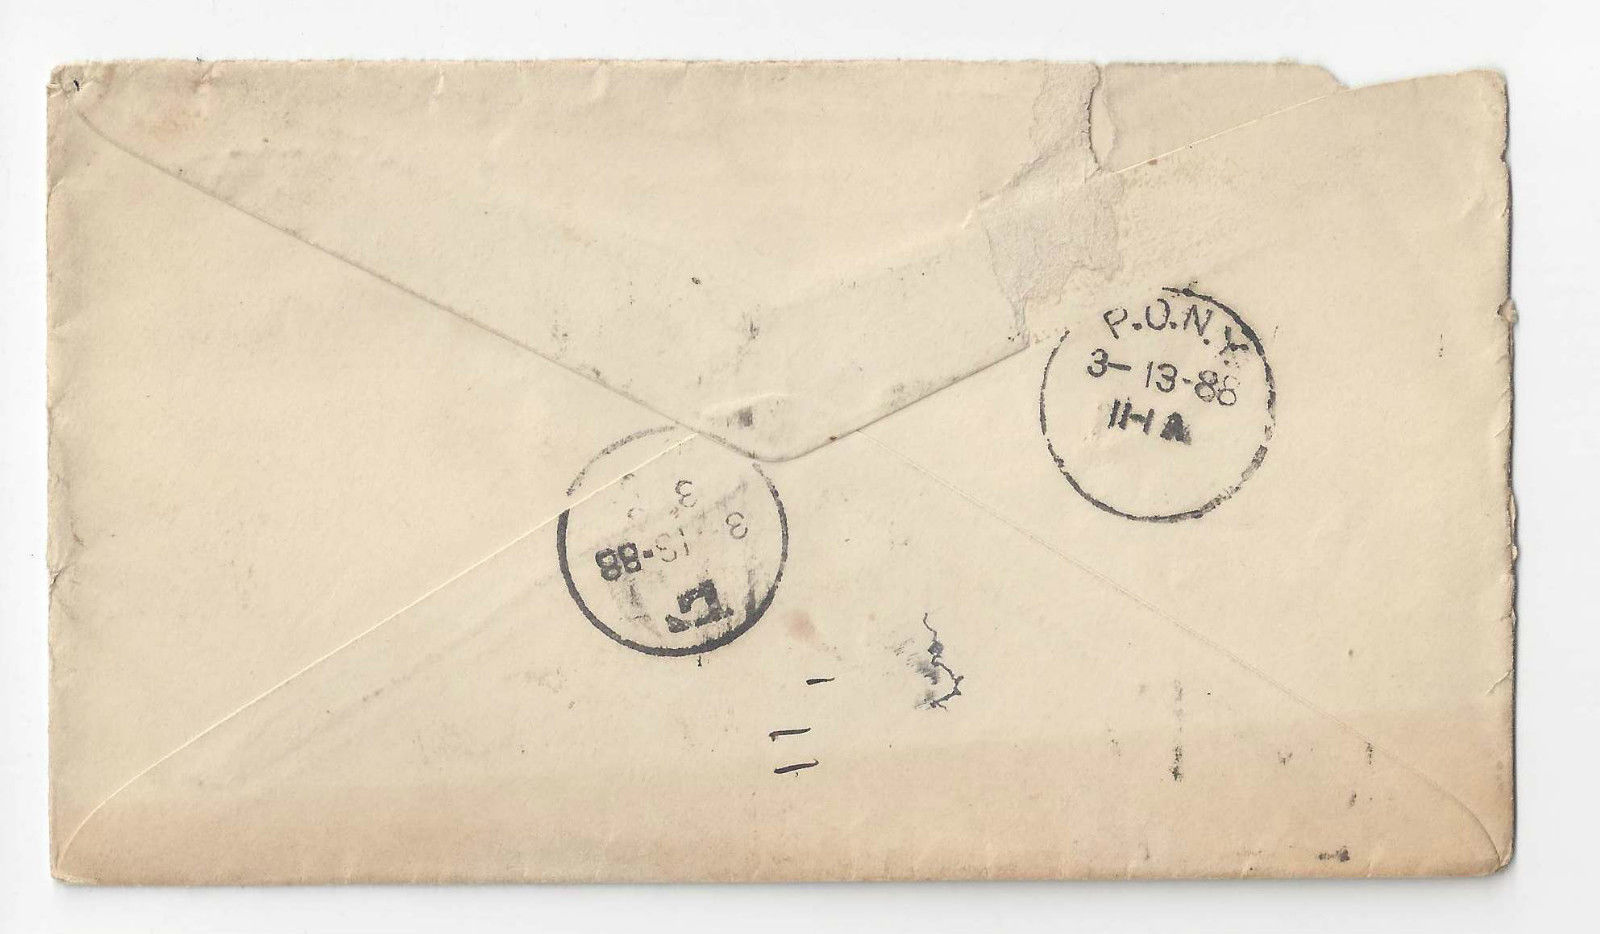 1888 Allentown PA Commercial Hotel Cover New York P.O.N.Y. Receiving on Reverse